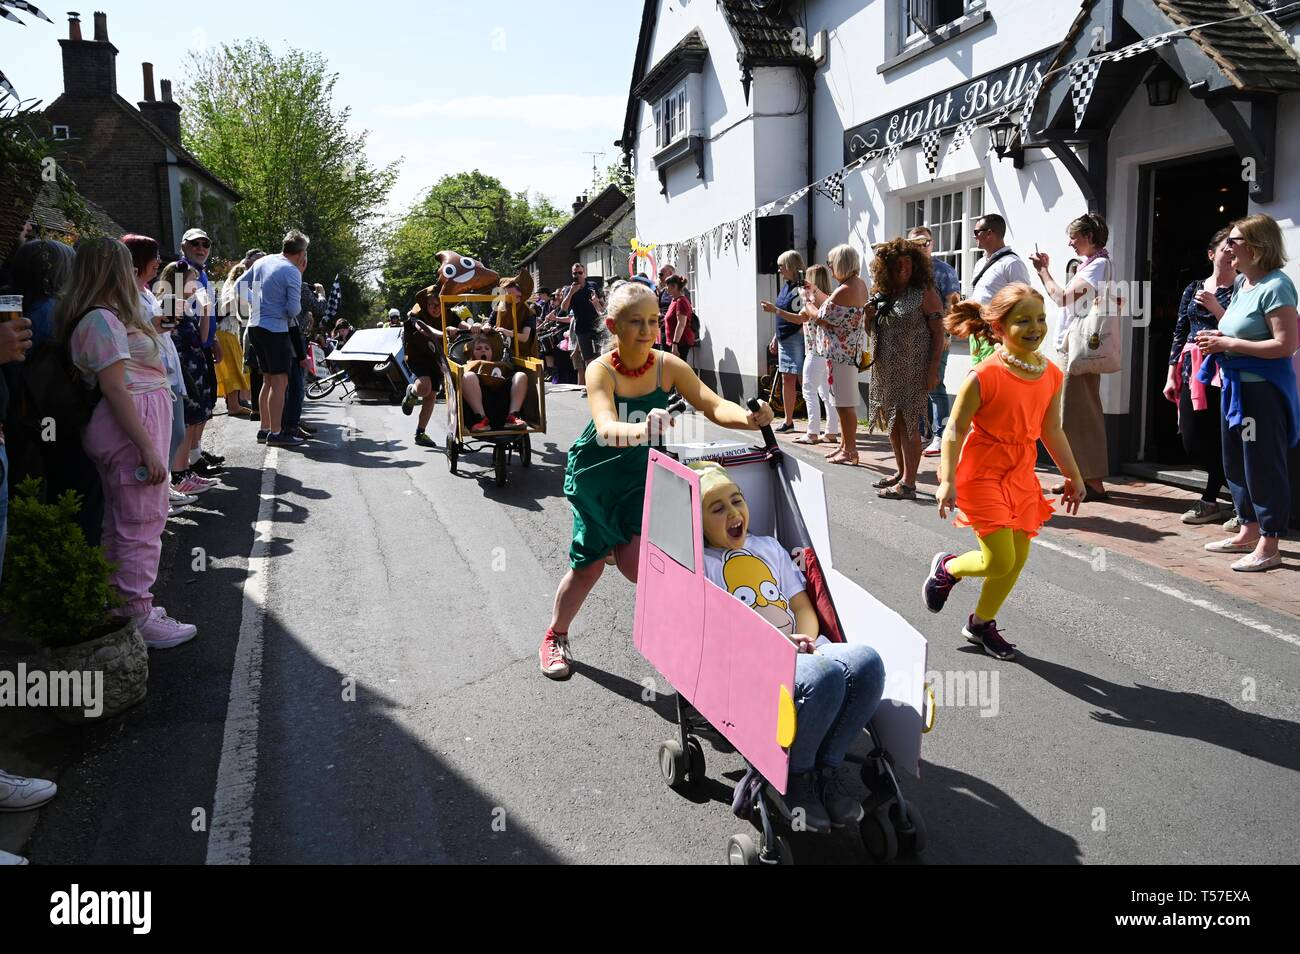 Bolney Sussex, UK. 22nd Apr, 2019. The children's race in the annual Bolney Pram Race in hot sunny weather . The annual races start and finish at the Eight Bells Pub in the village every Easter Bank Holiday Monday Credit: Simon Dack/Alamy Live News Stock Photo